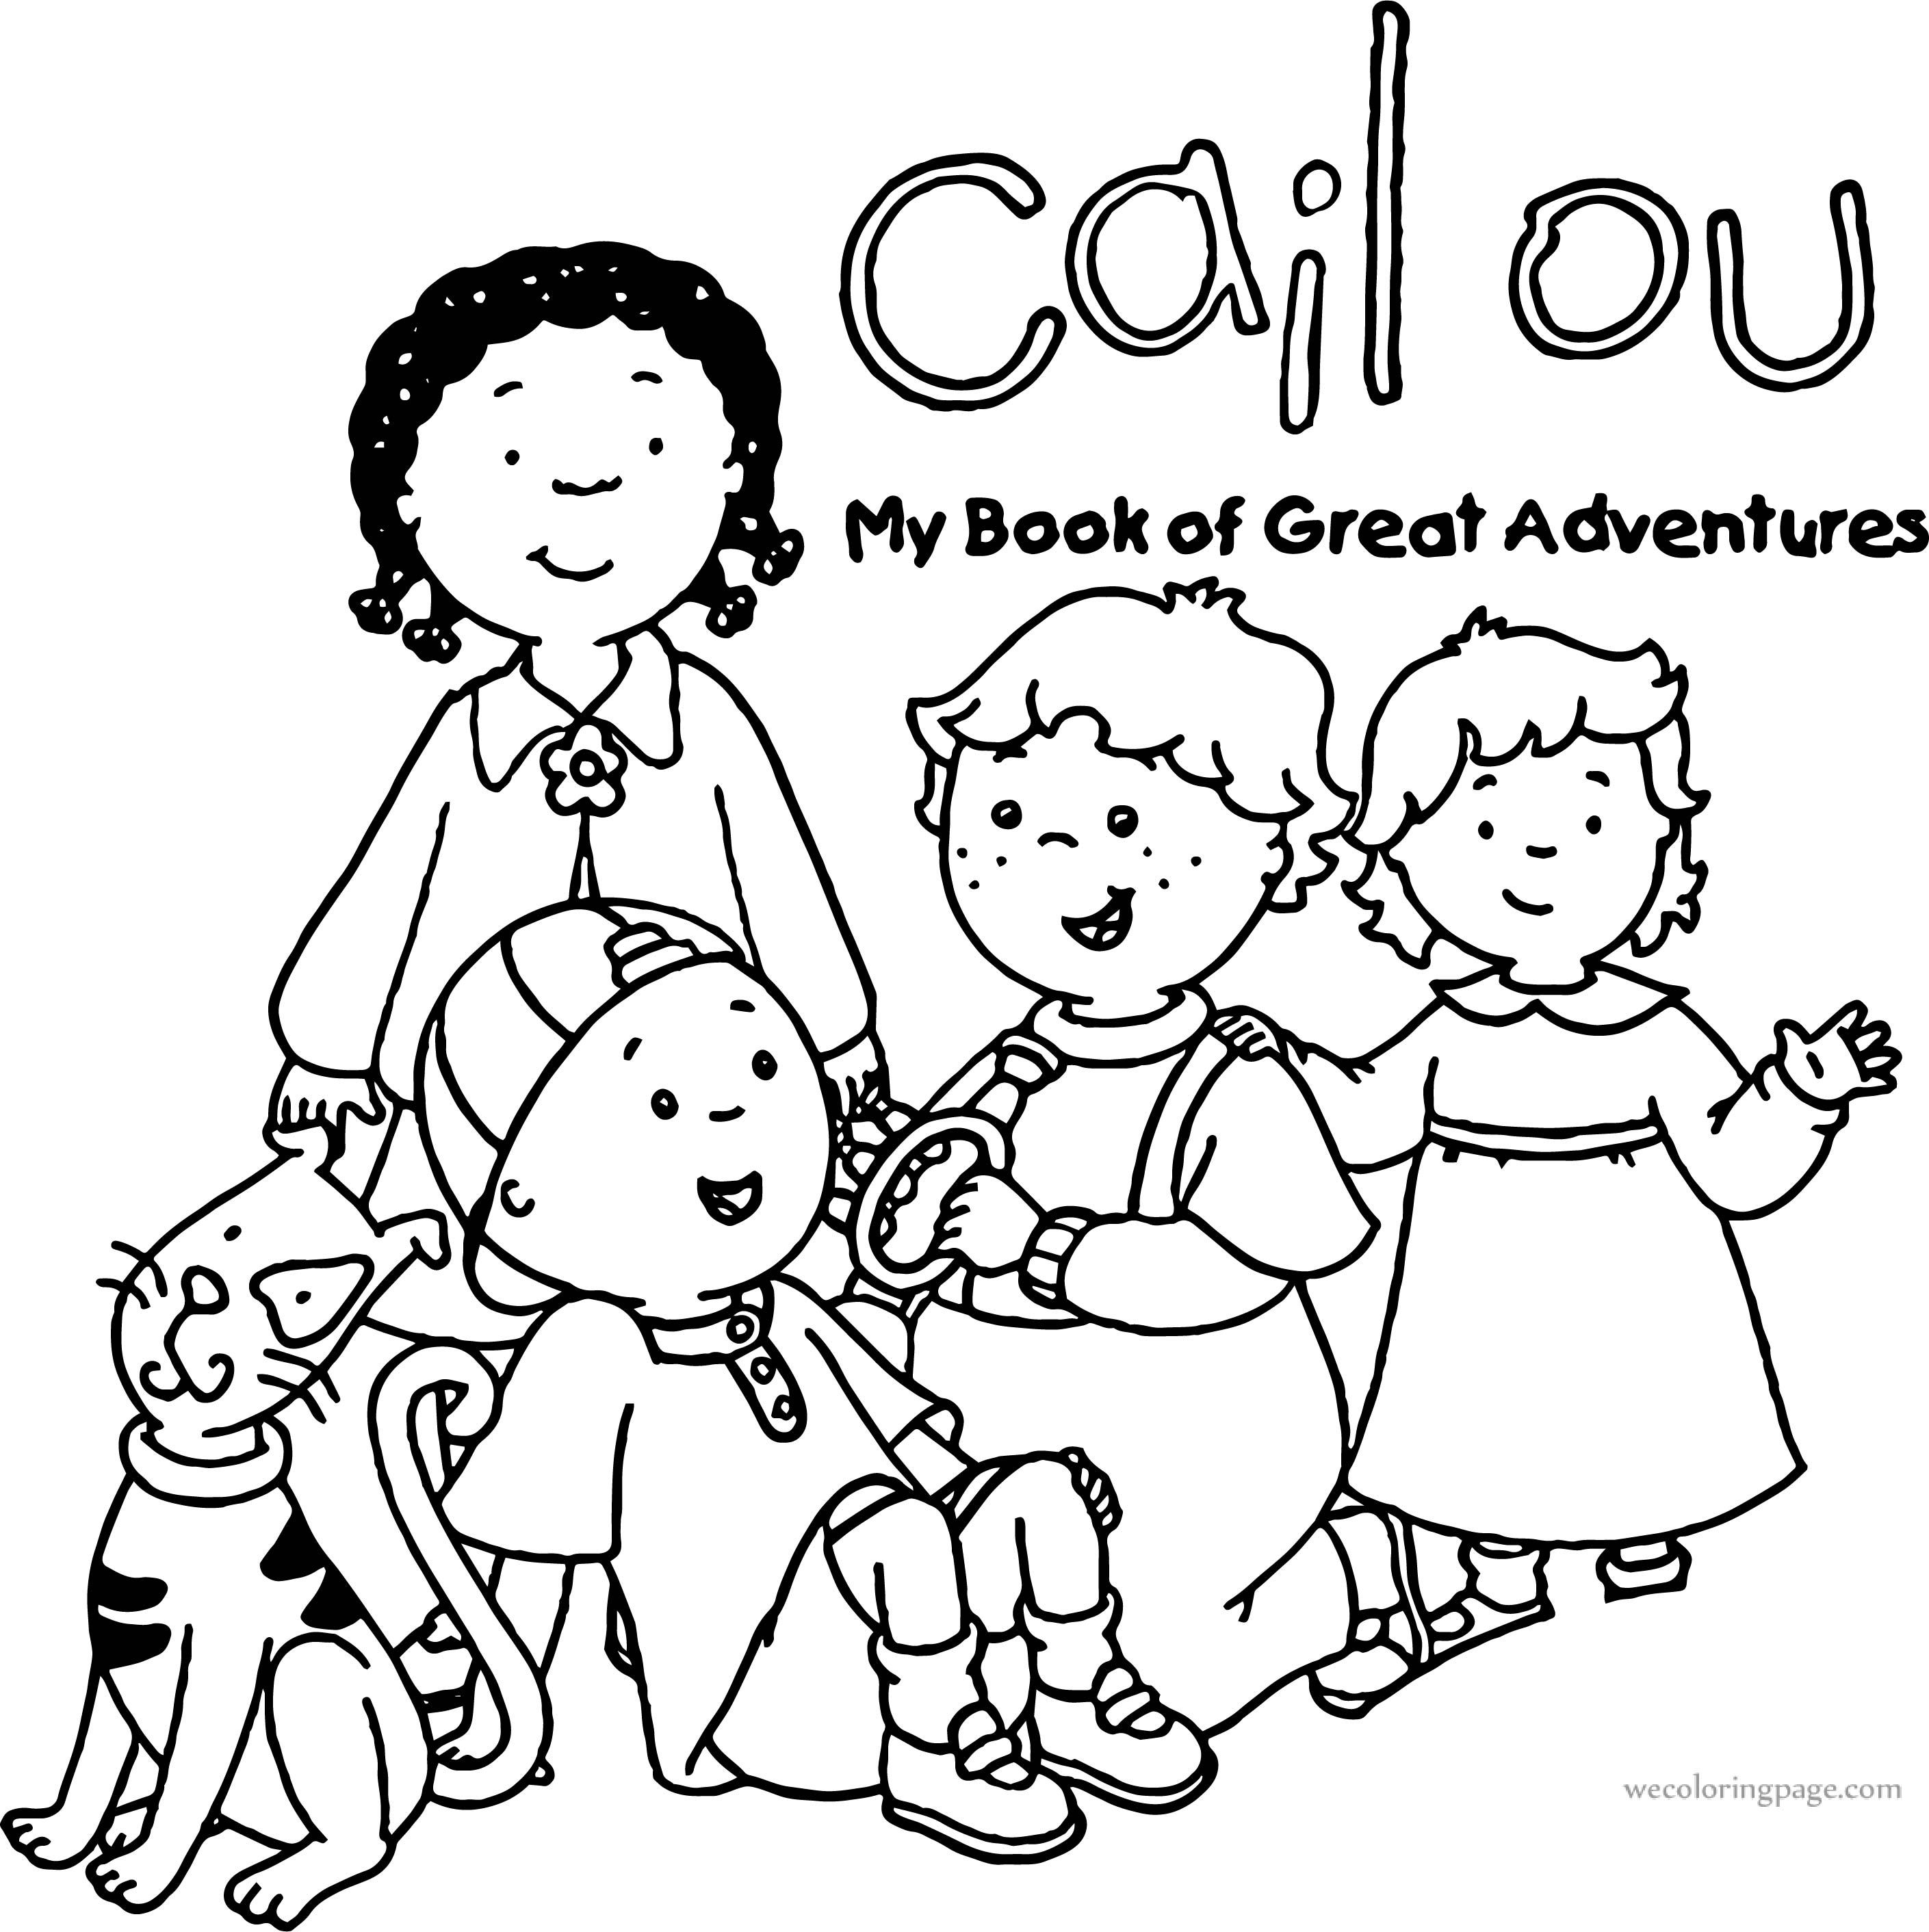 Caillou My Book Great Adventures Coloring Page